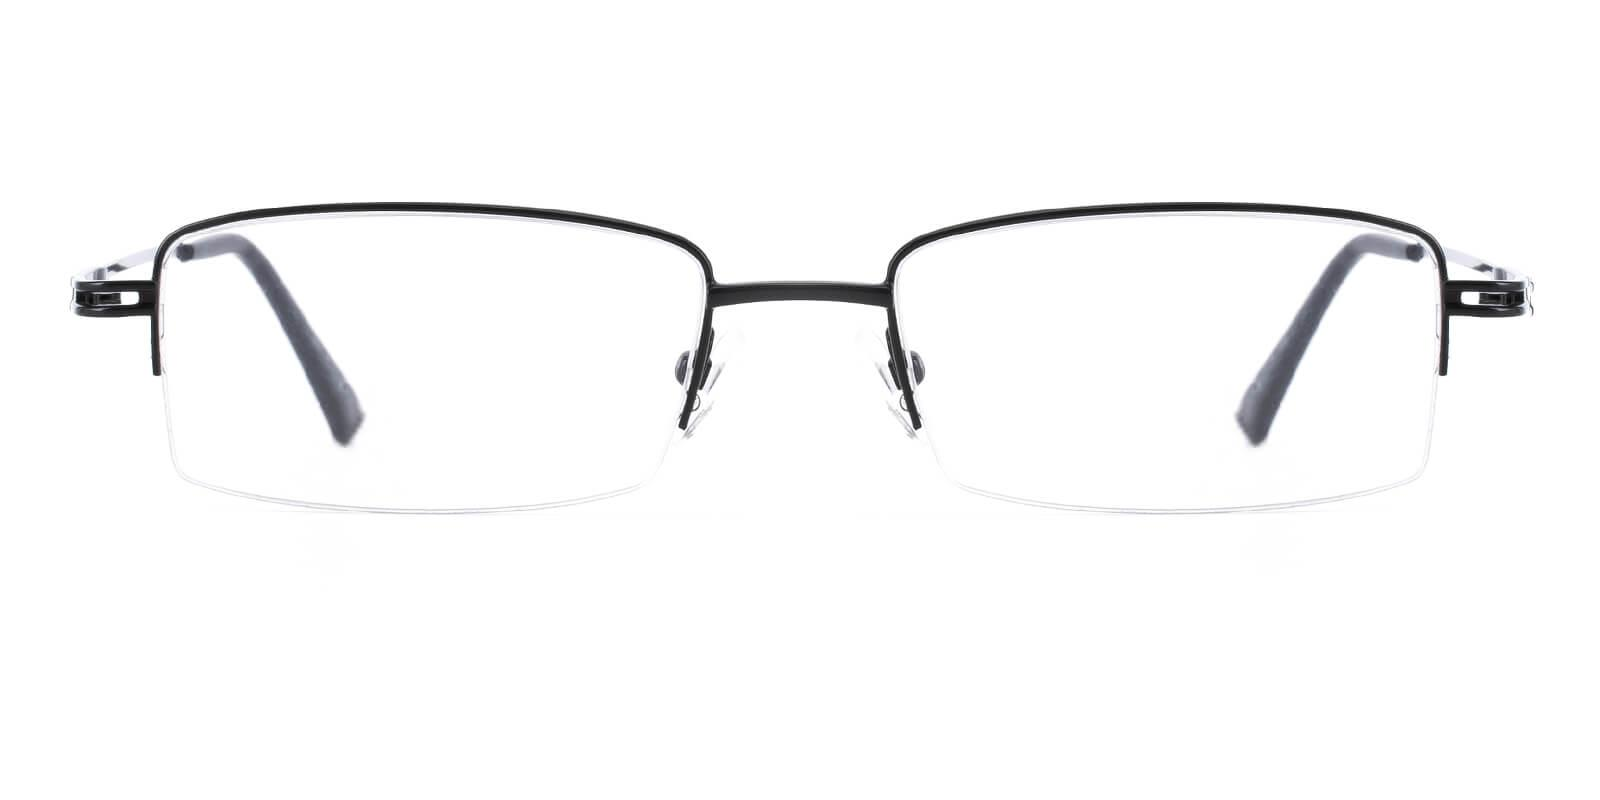 Studio-Black-Rectangle-Metal-Eyeglasses-additional2